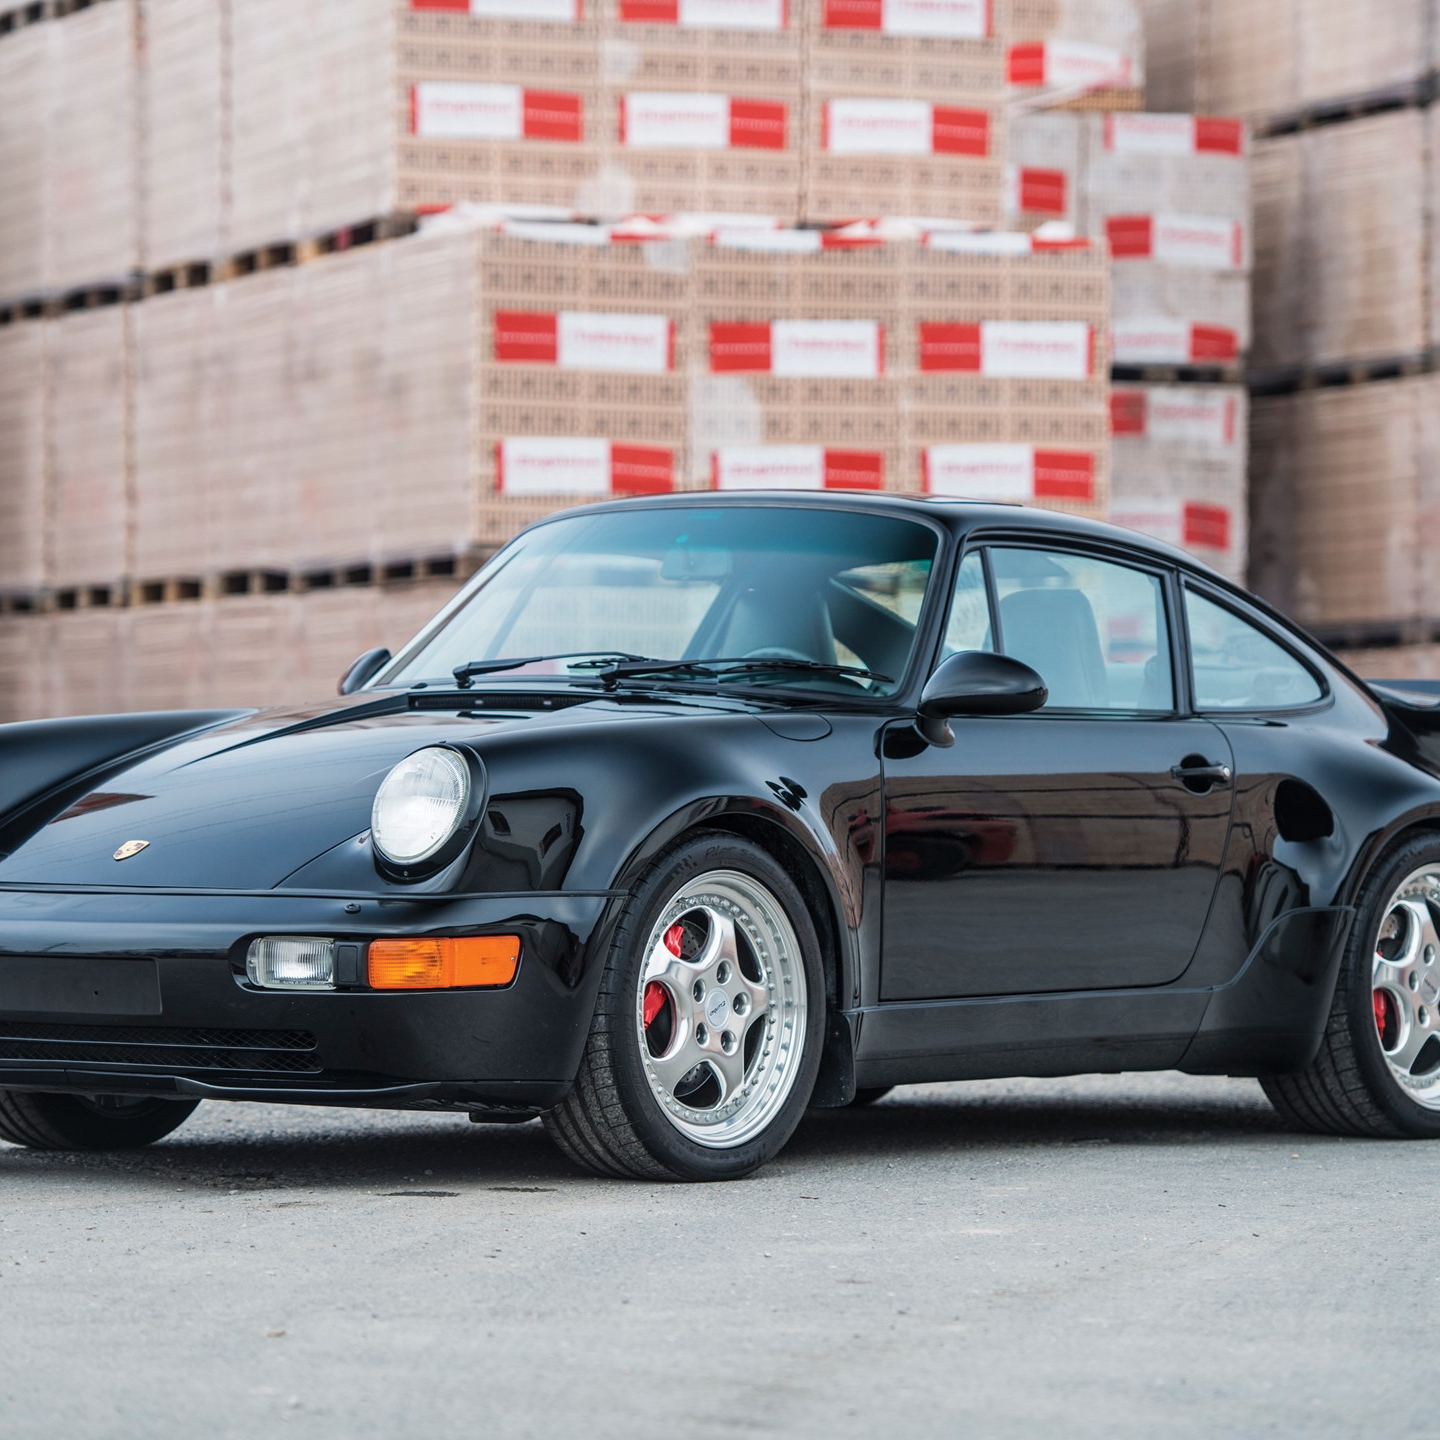 Porsche 911 Turbo 3.6 S 'Package'